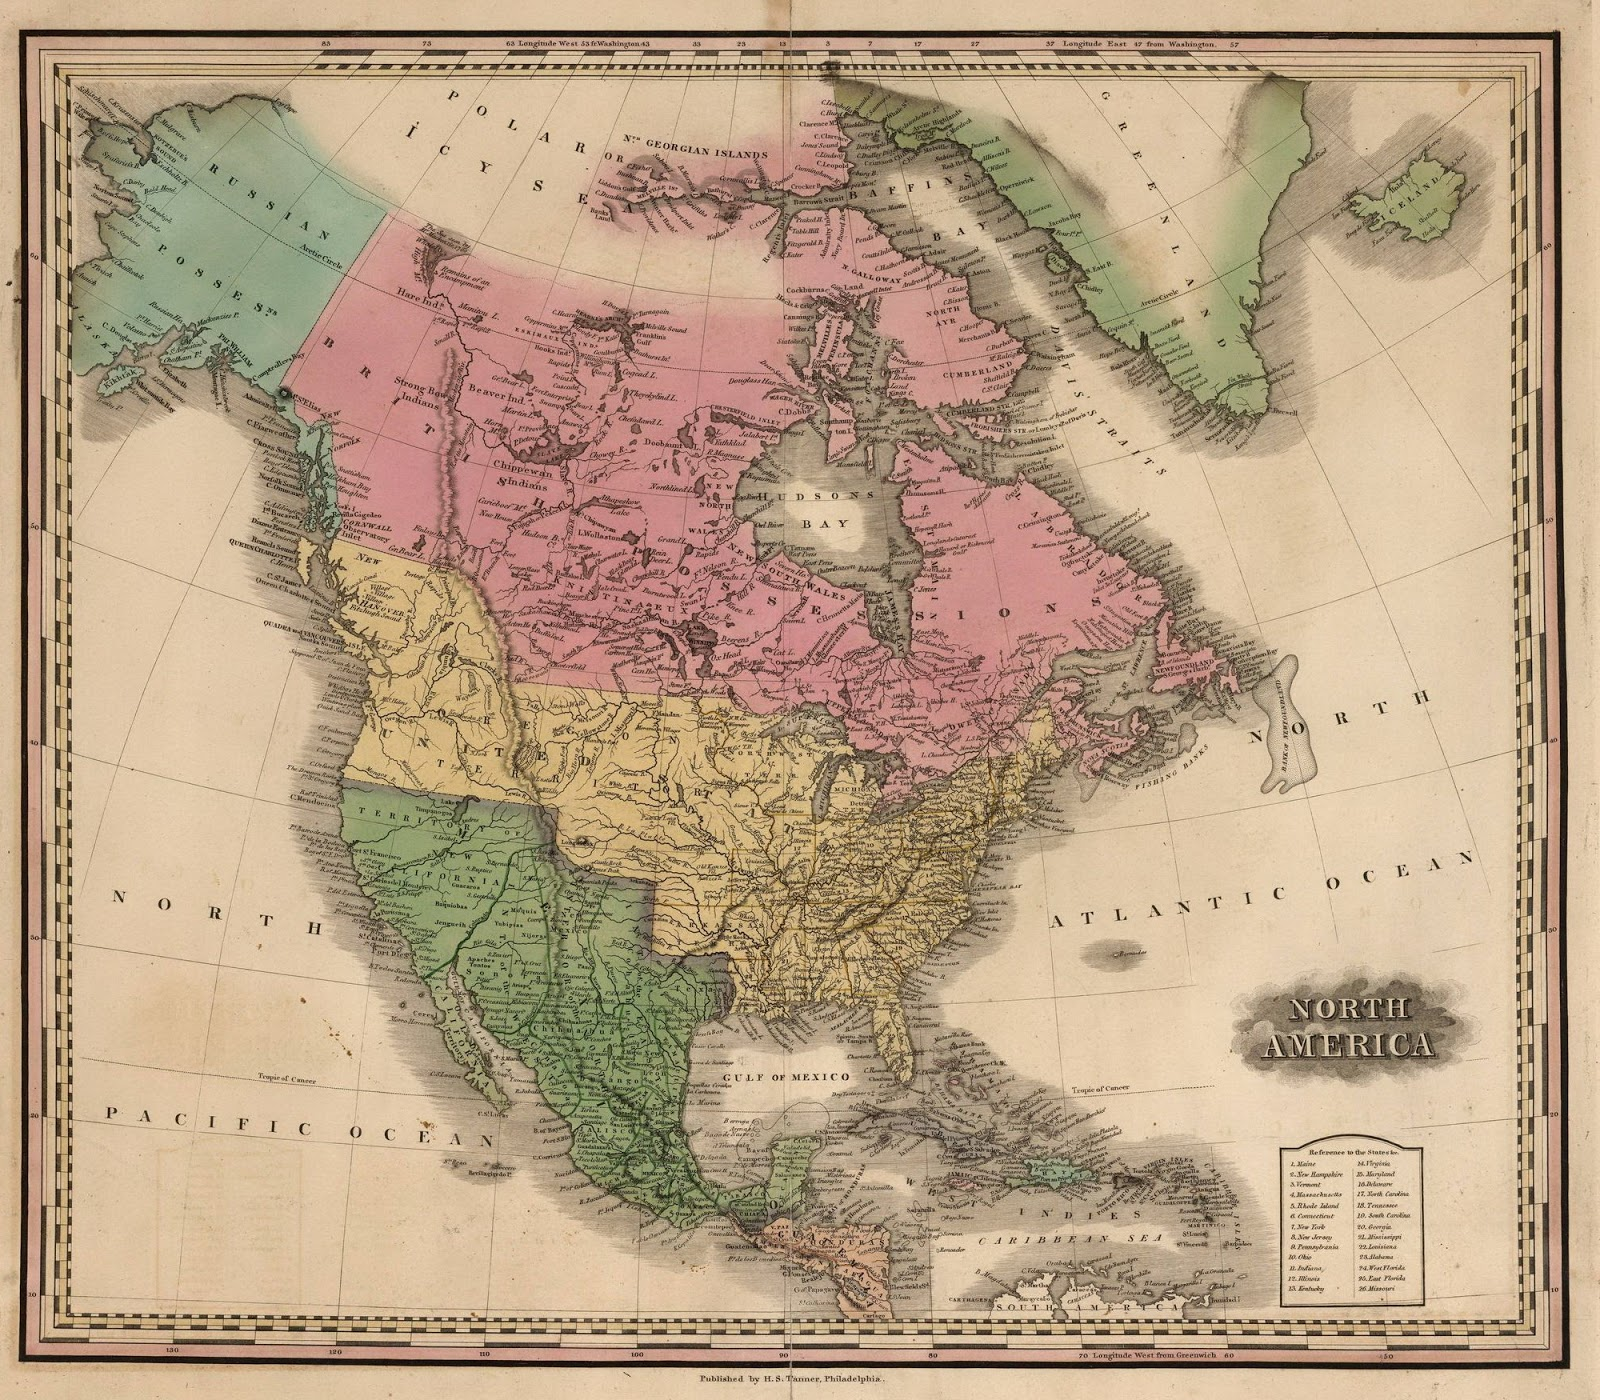 Atlas of North America that shows British Columbia (then apart of the Oregon Country) as an American possession (1826)